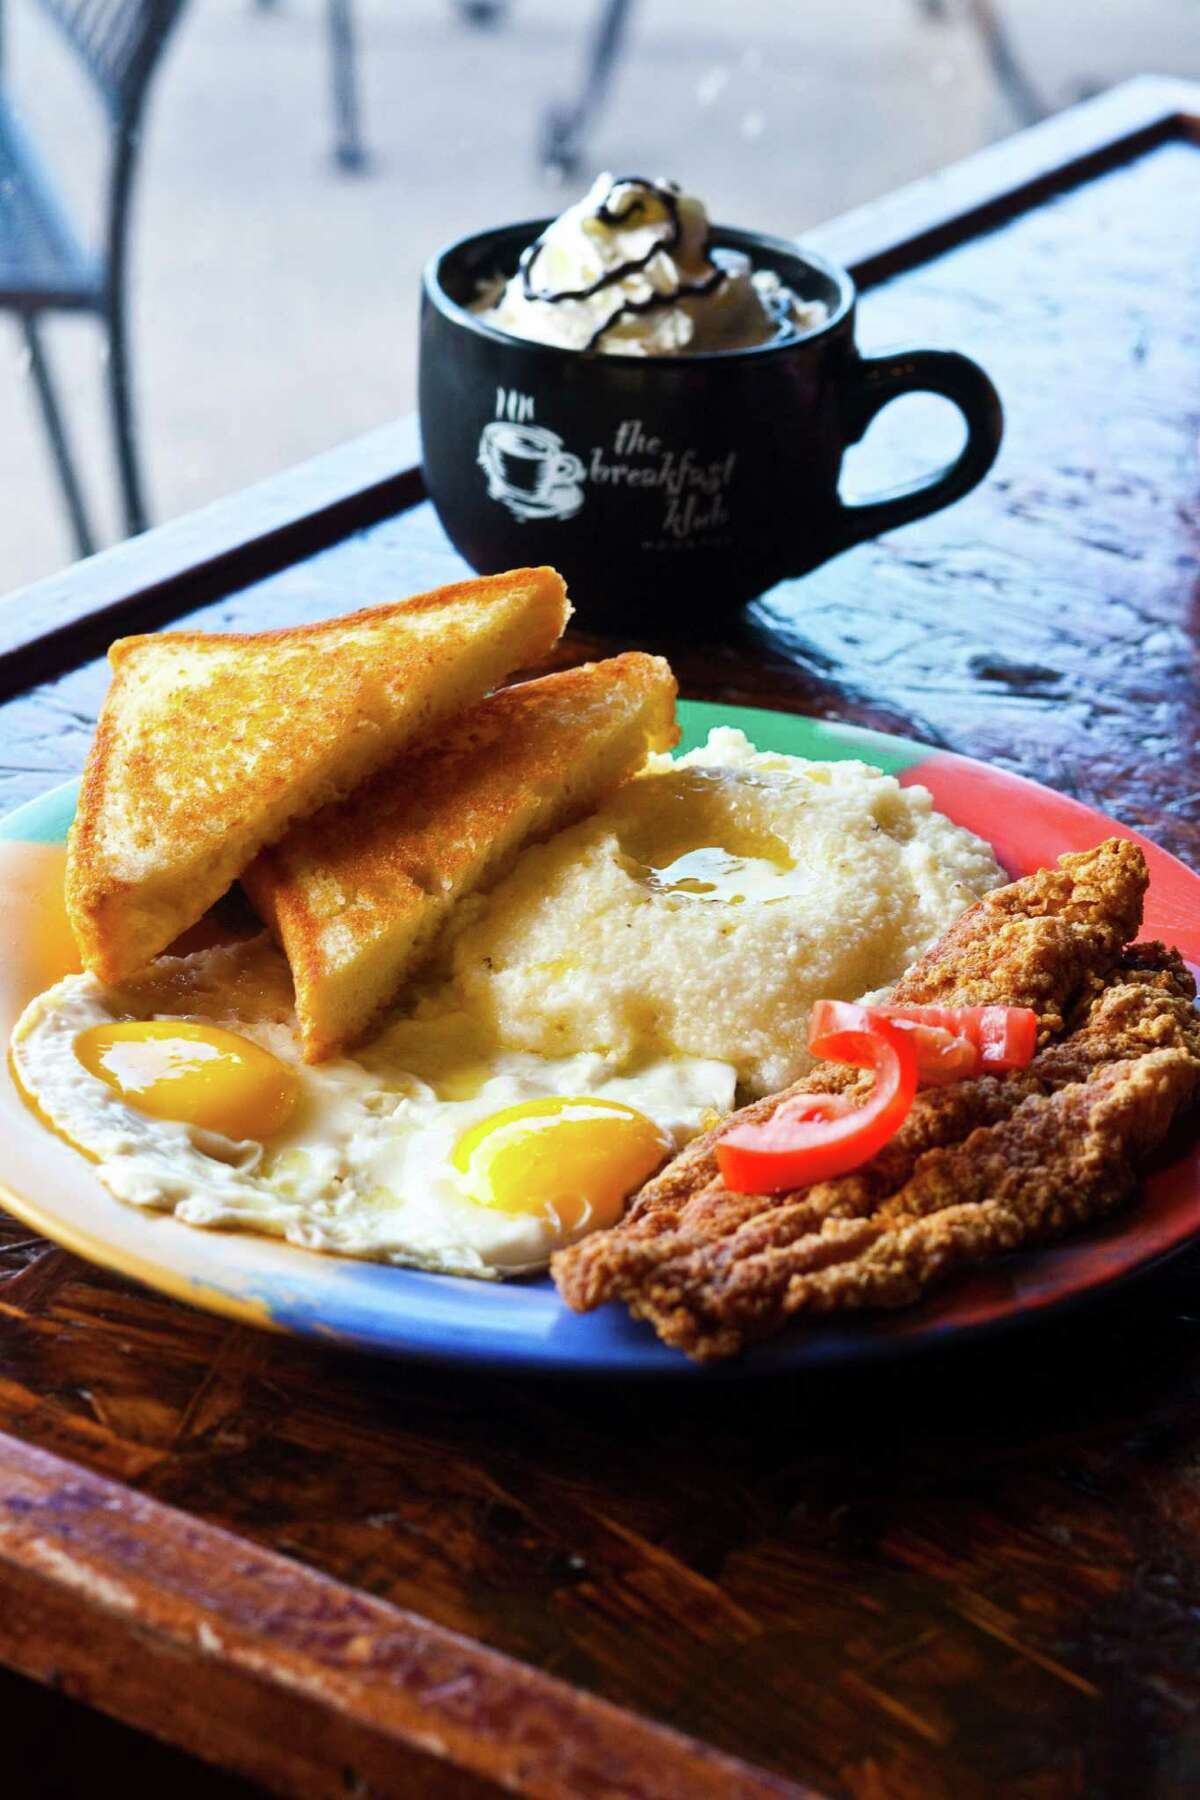 Fuel up on the Katfish & Grits plate at the Breakfast Klub on game day.